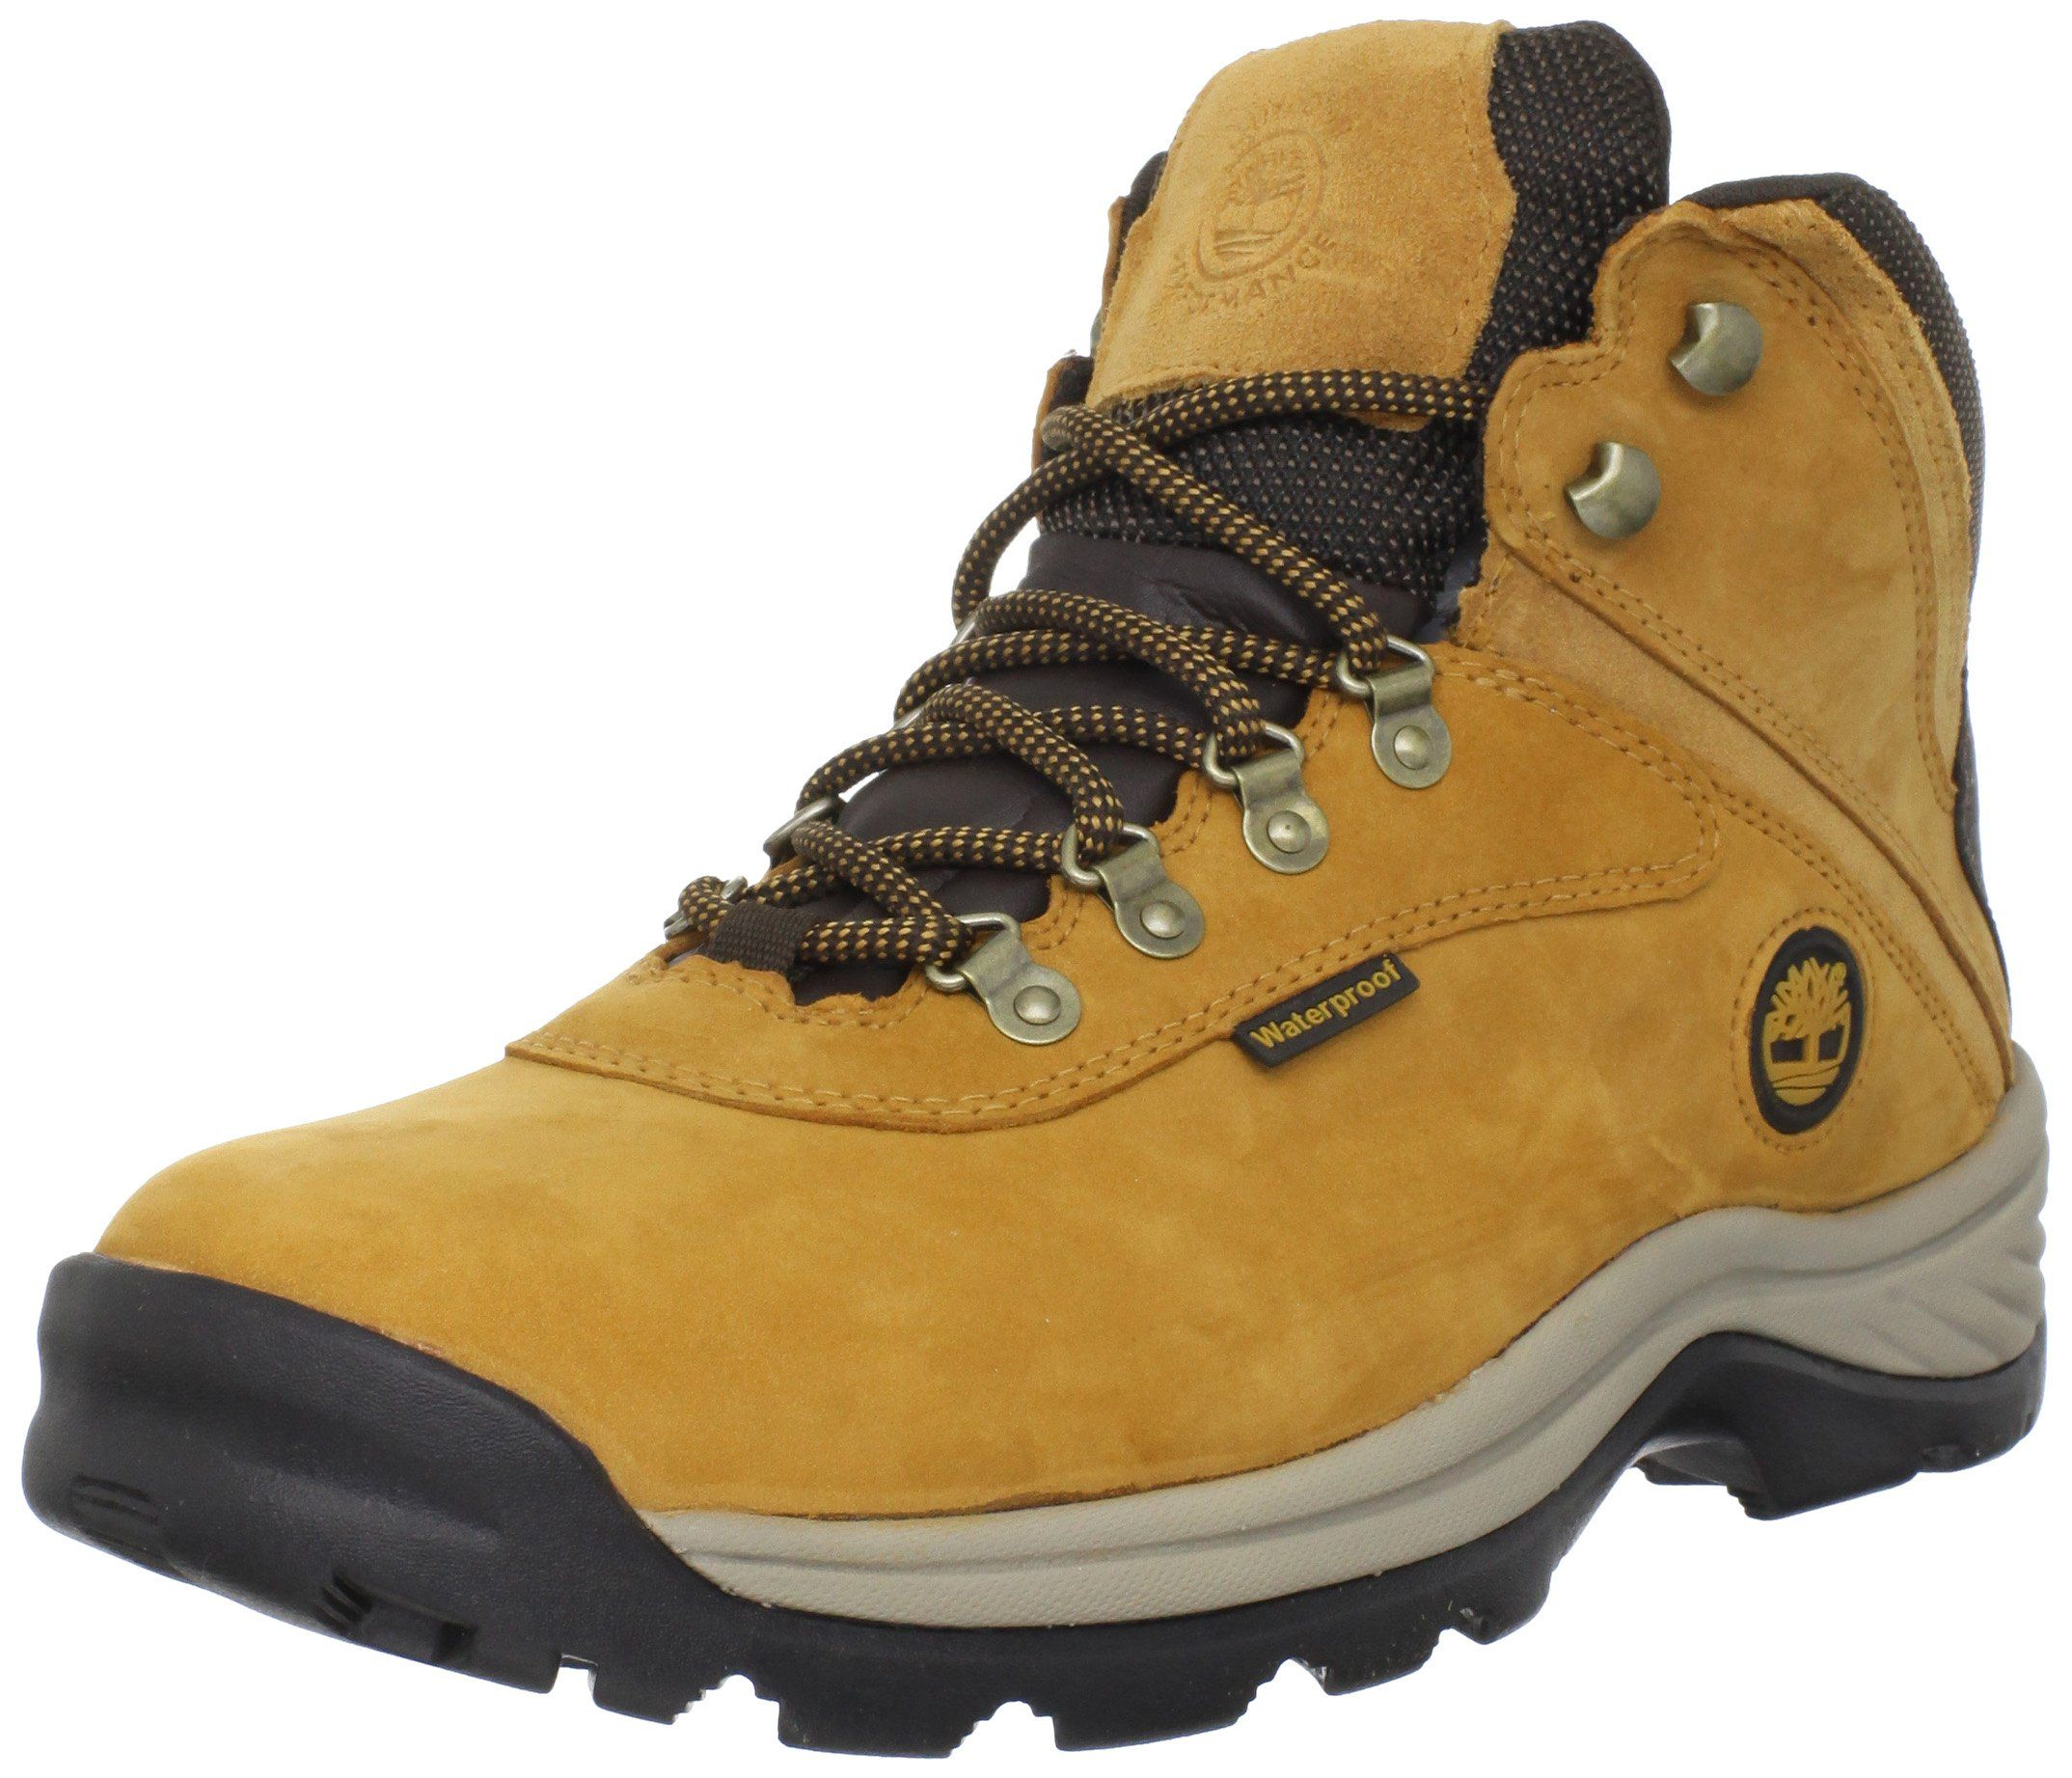 Timberland White Ledge Mid Waterproof Boot Mens Wheat 15